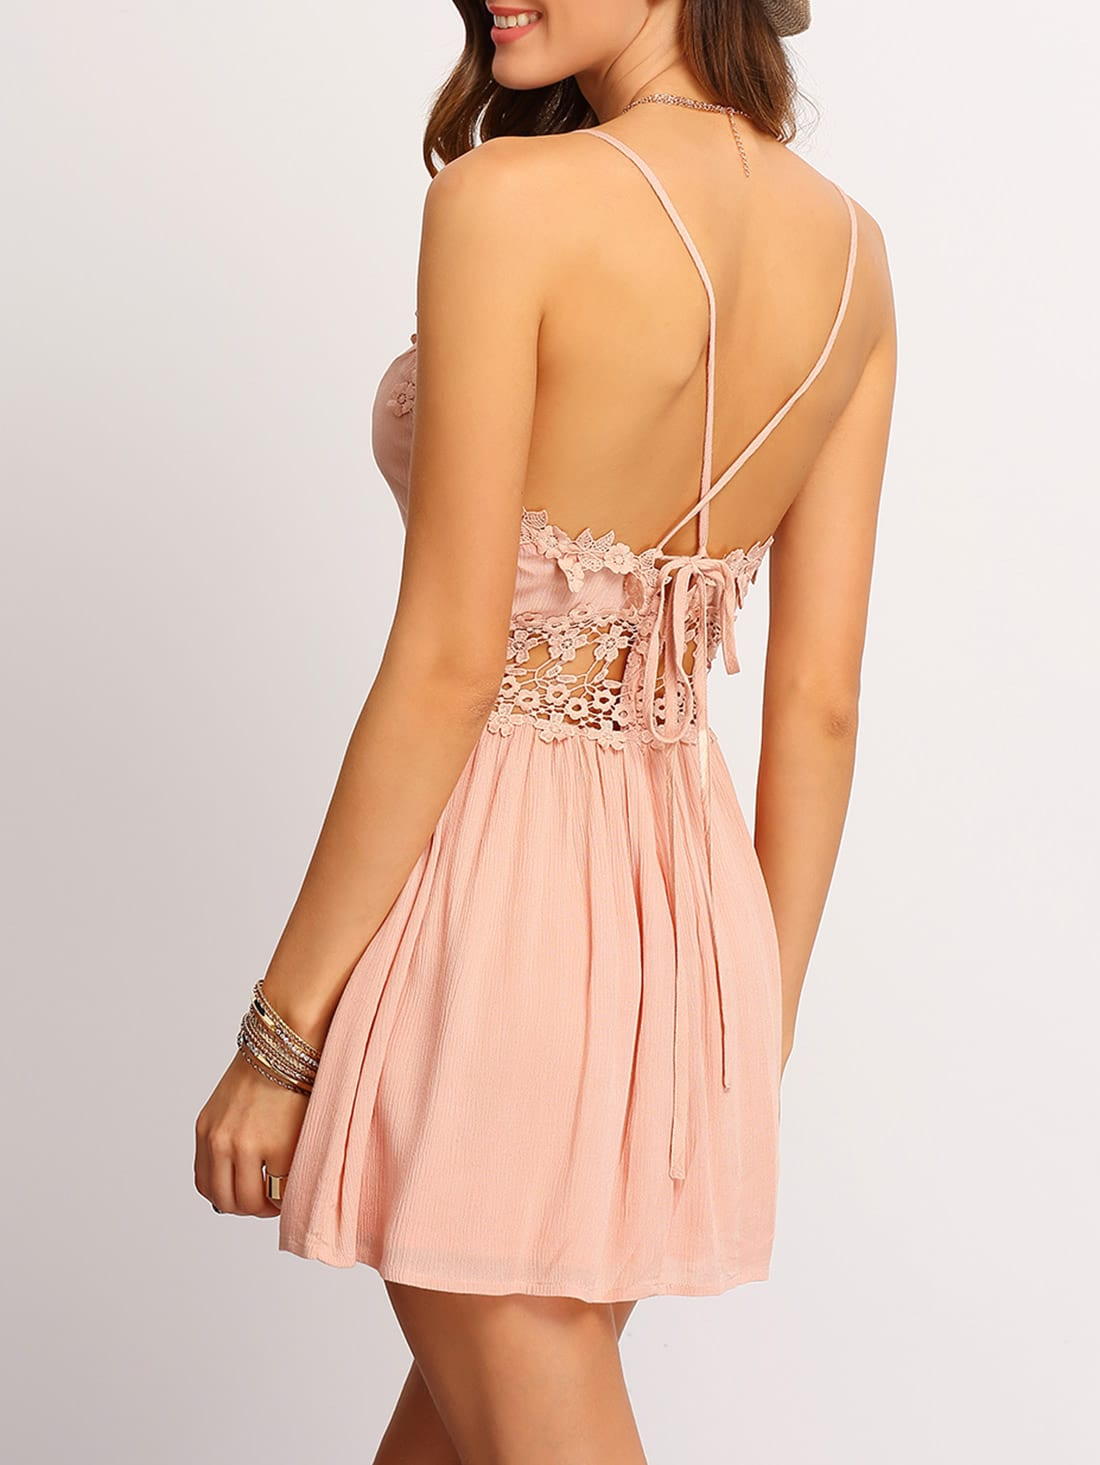 Crisscross Back Hollow Out Lace Up Dress